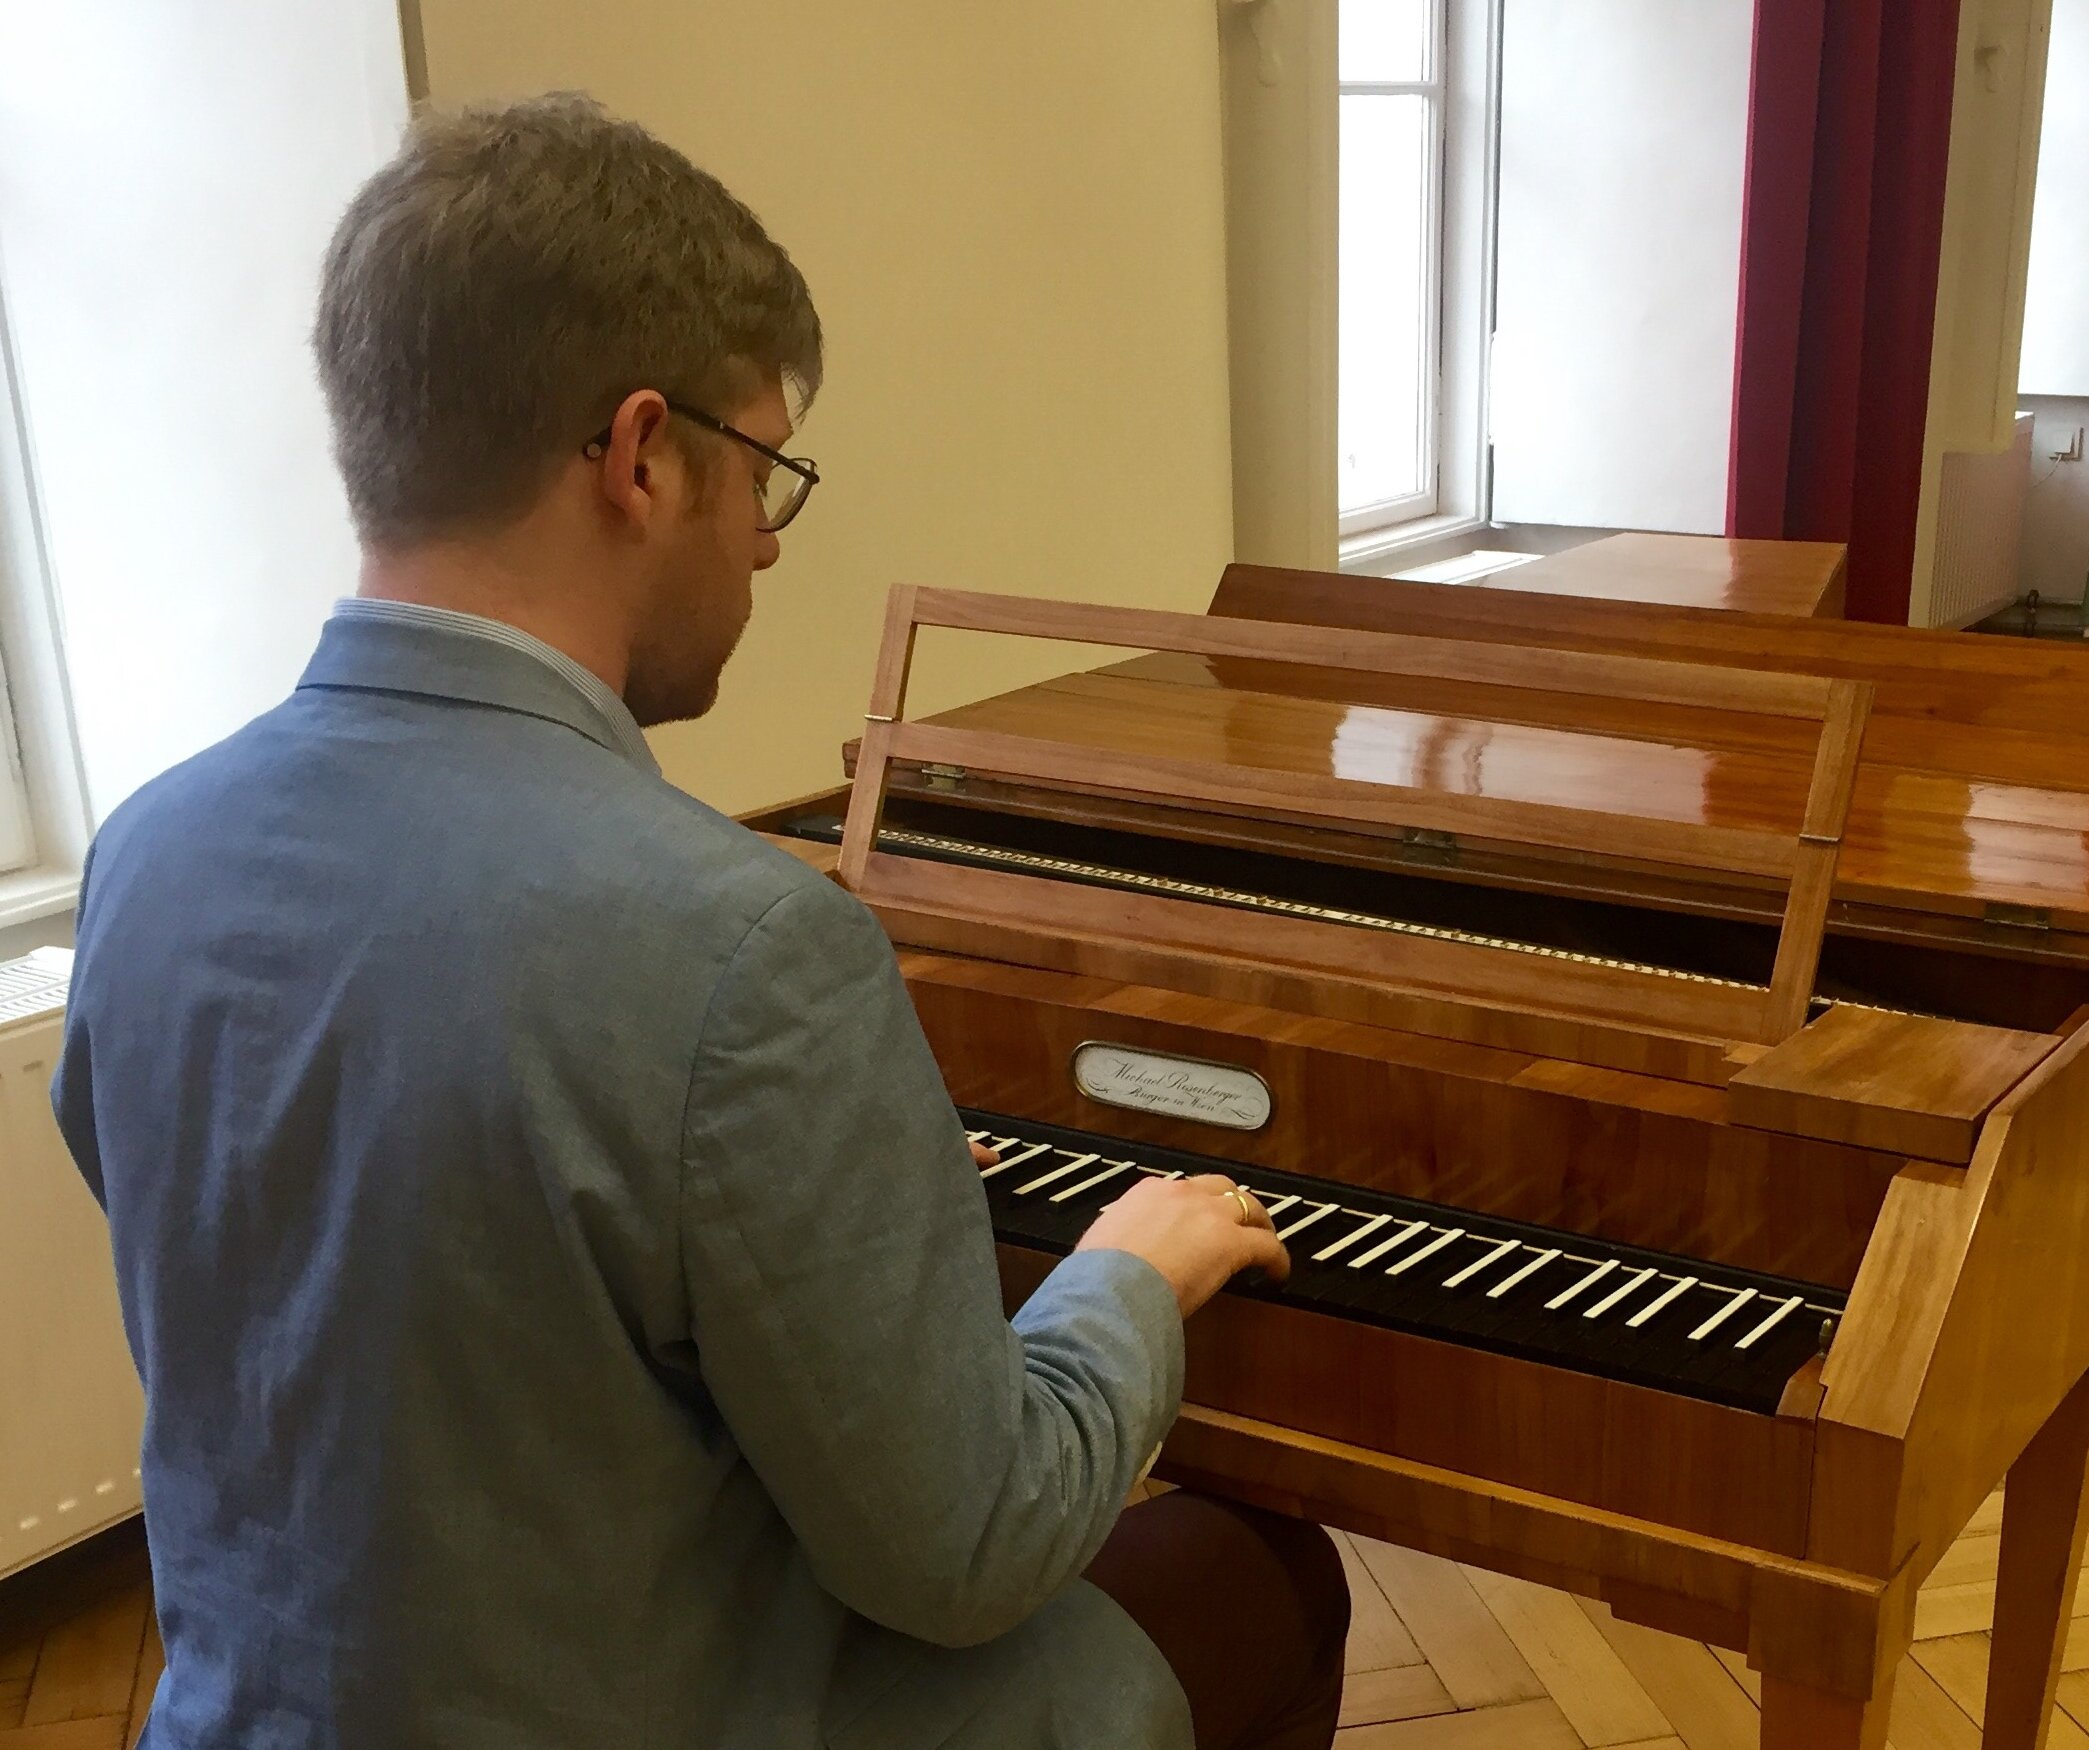 Daniel at an 1805 Michael Rosenberger fortepiano